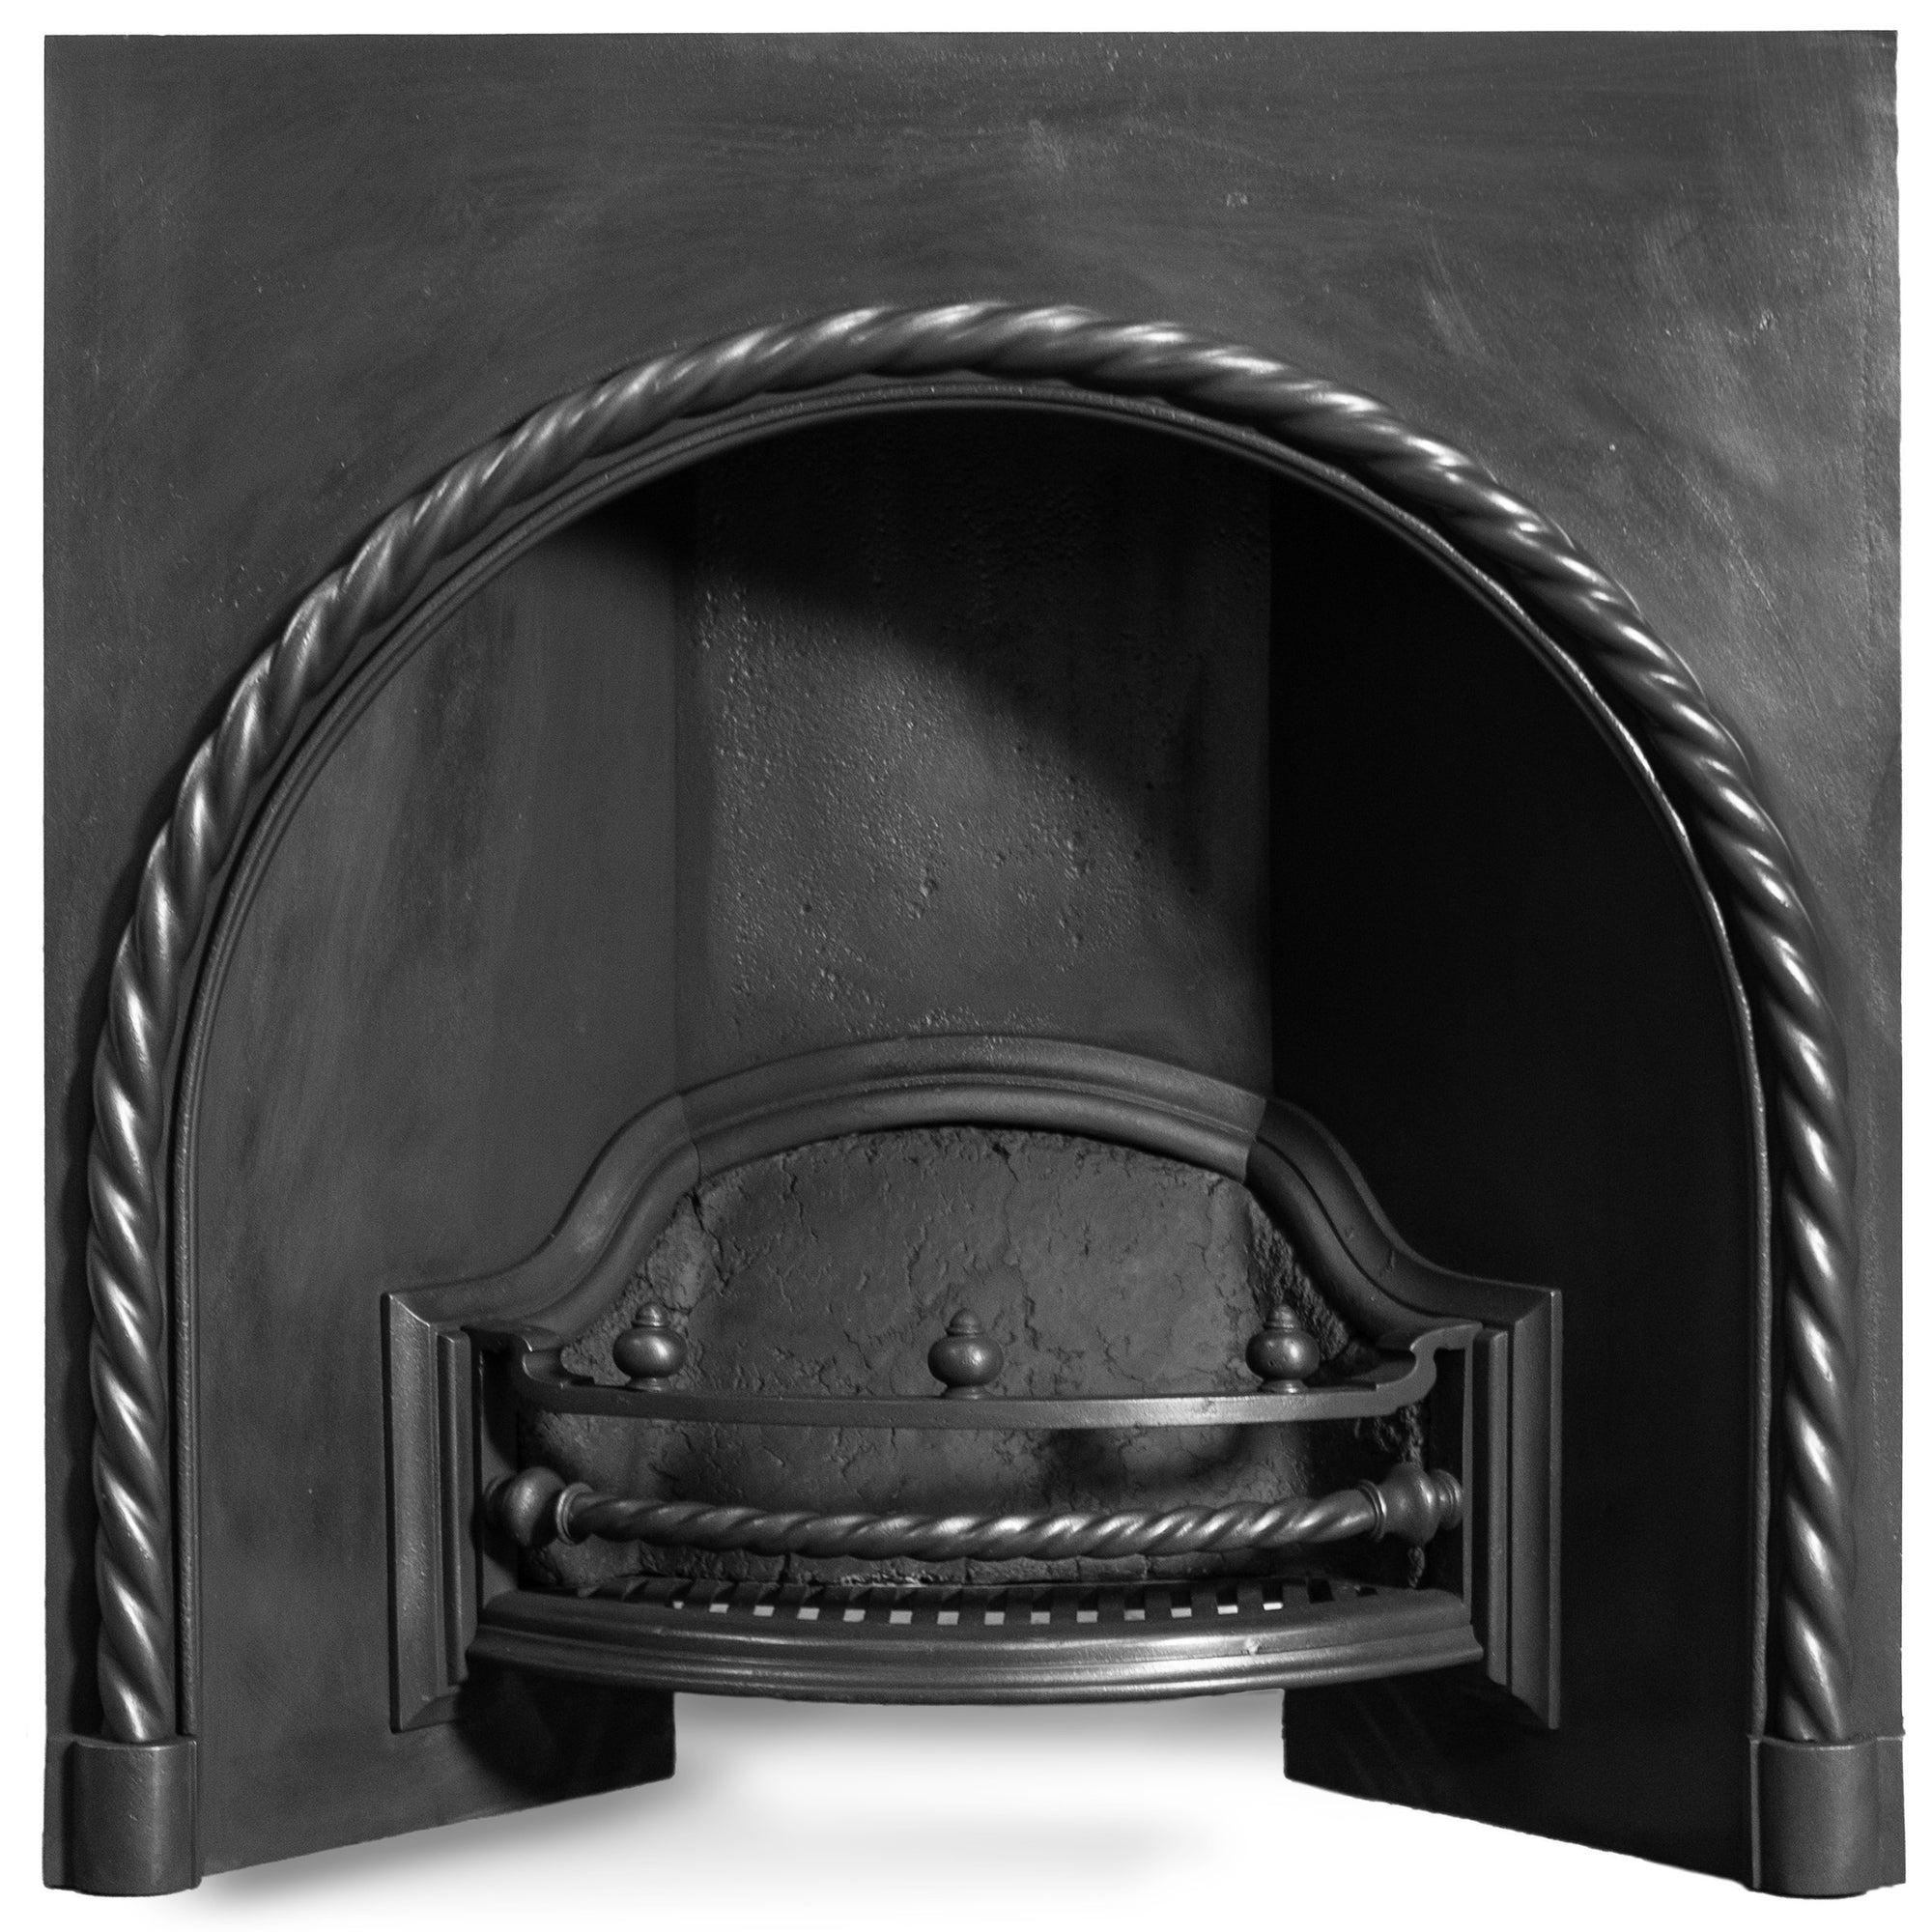 Antique Cast Iron Arched Fireplace Insert with Rope Detail